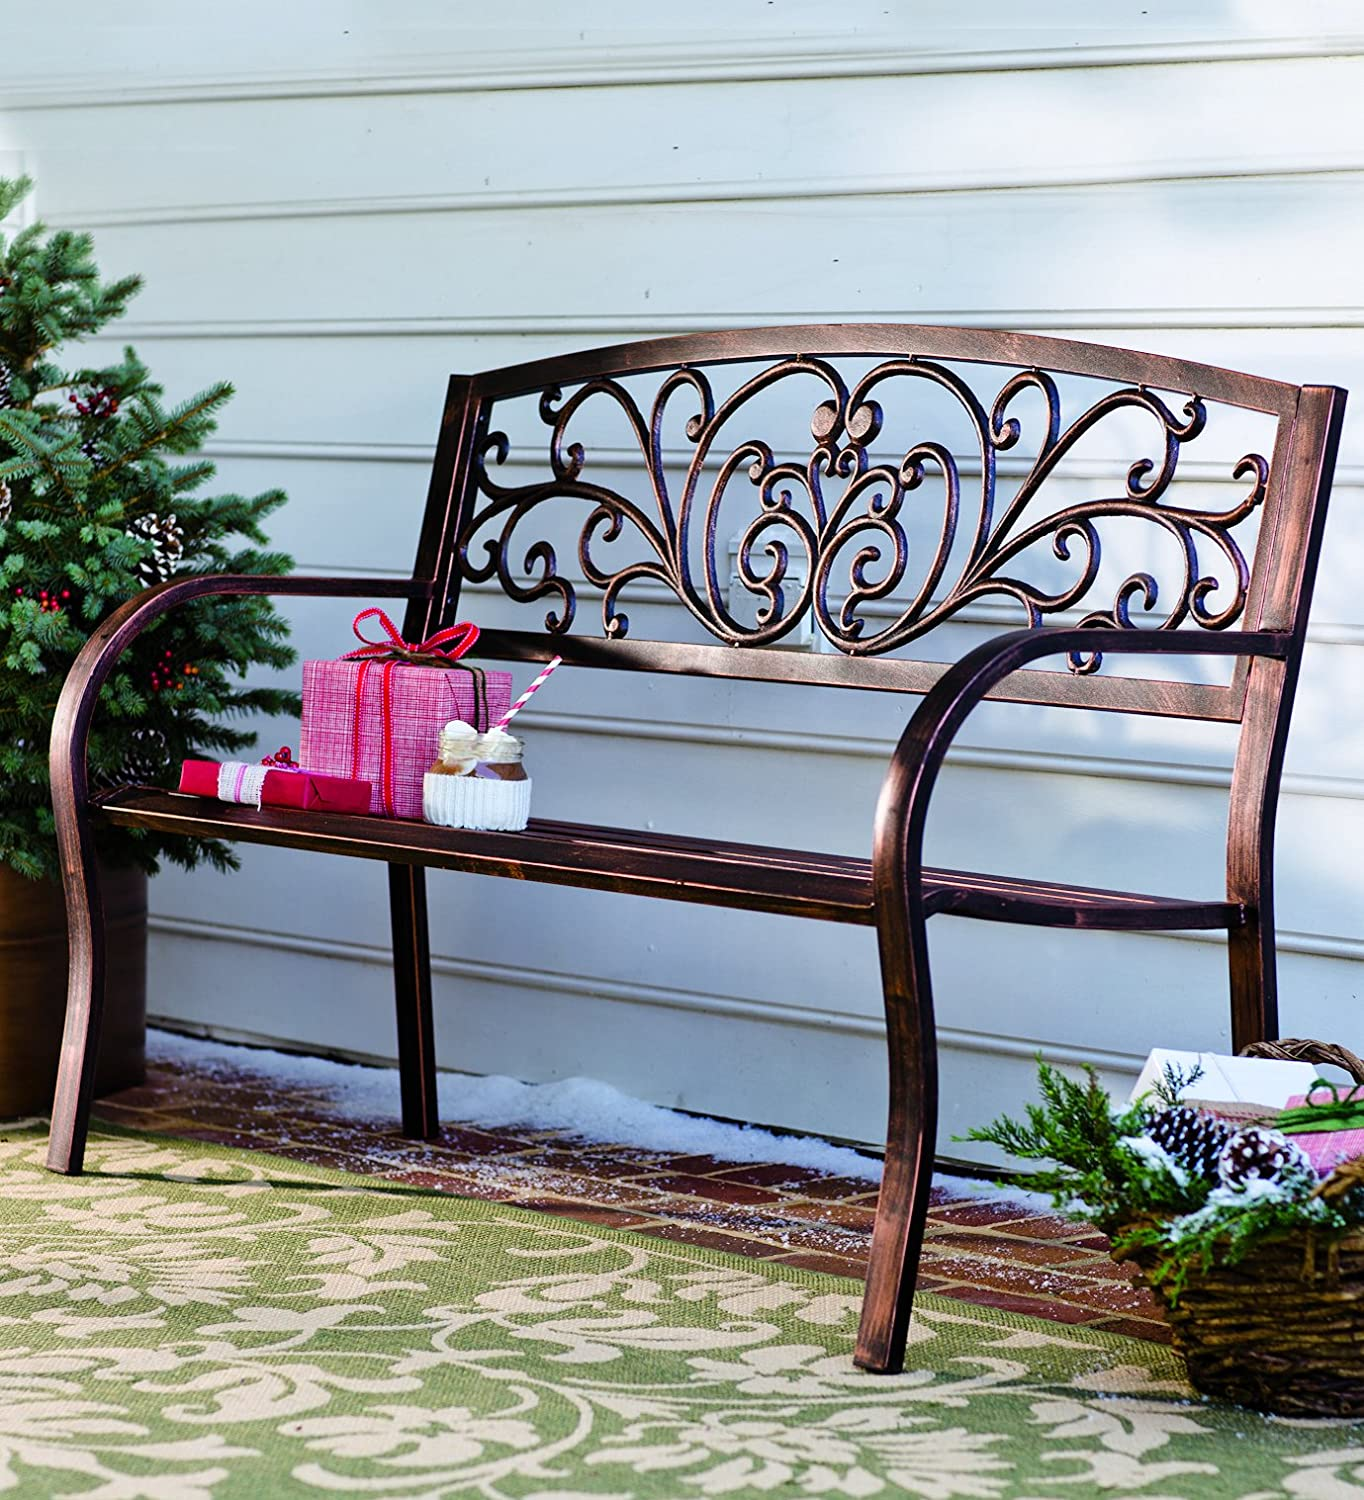 Amazon com   Blooming Patio Garden Bench Park Yard Outdoor Furniture  Iron  Metal Frame  Elegant Bronze Finish  Sturdy Durable Construction. Amazon com   Blooming Patio Garden Bench Park Yard Outdoor